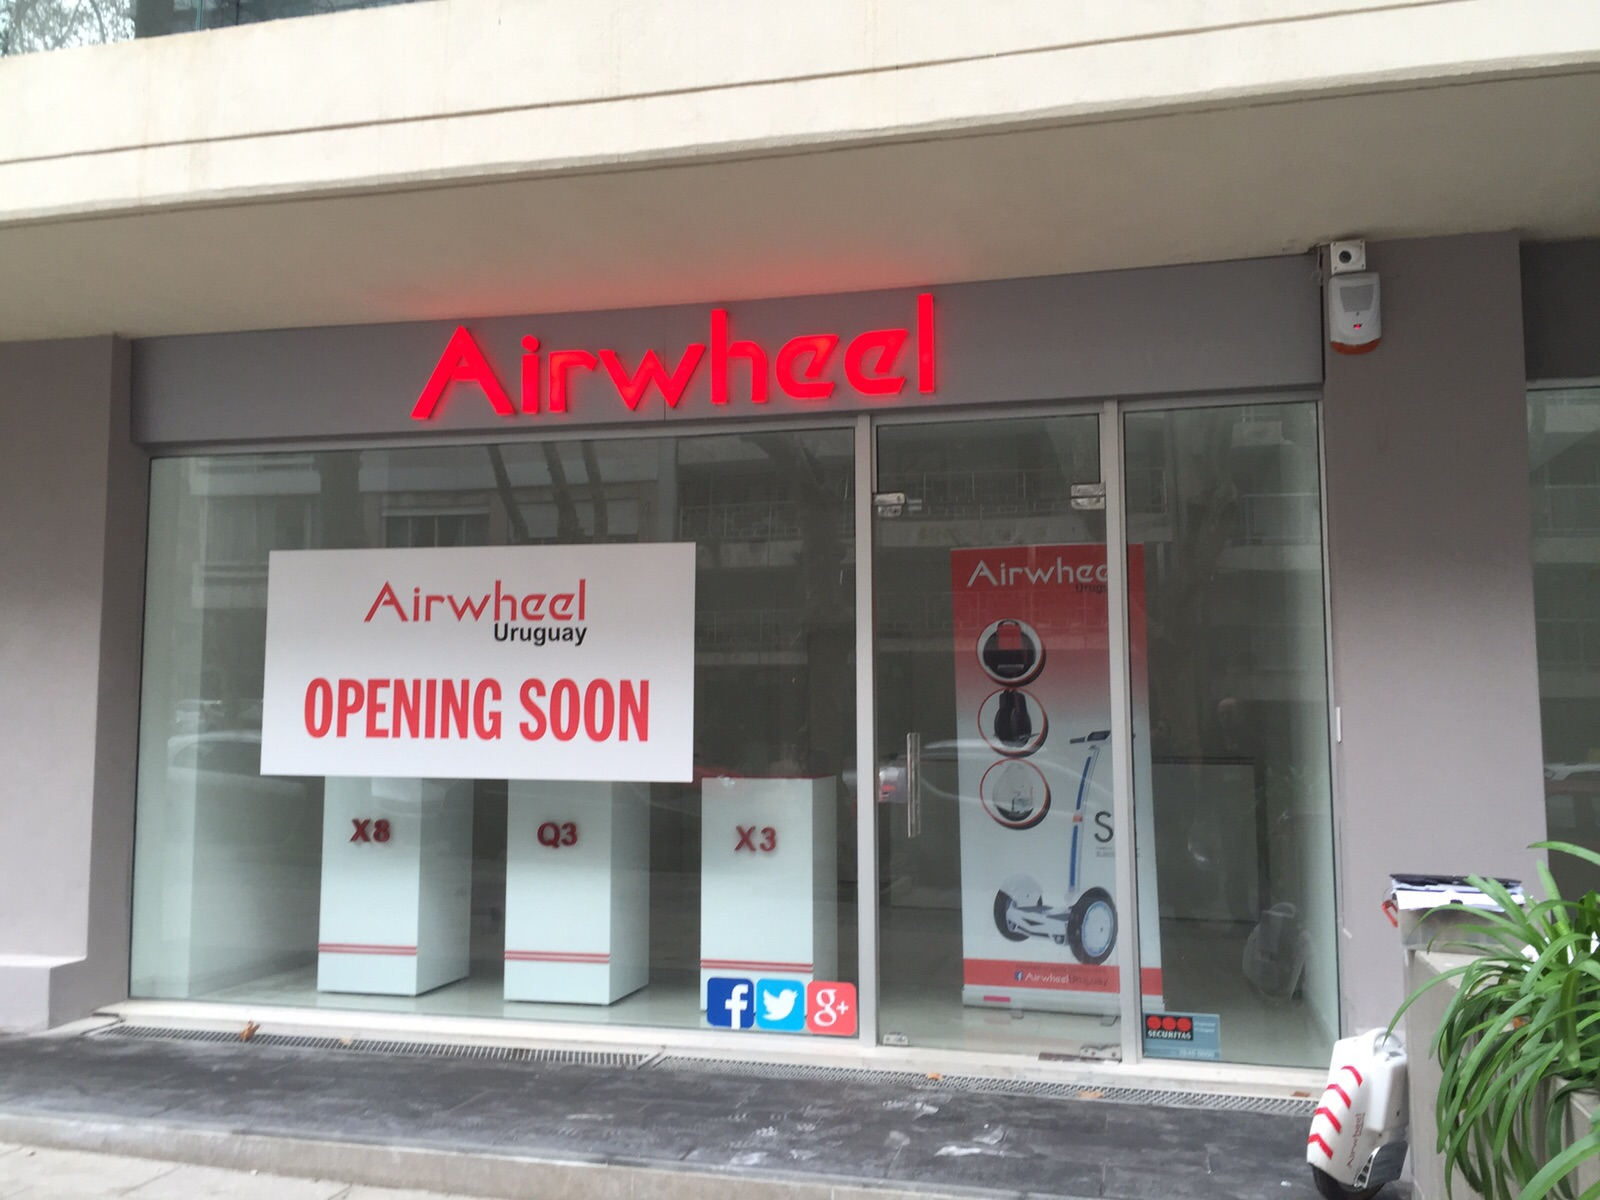 Airwheel's grand opening soon in Uruguay